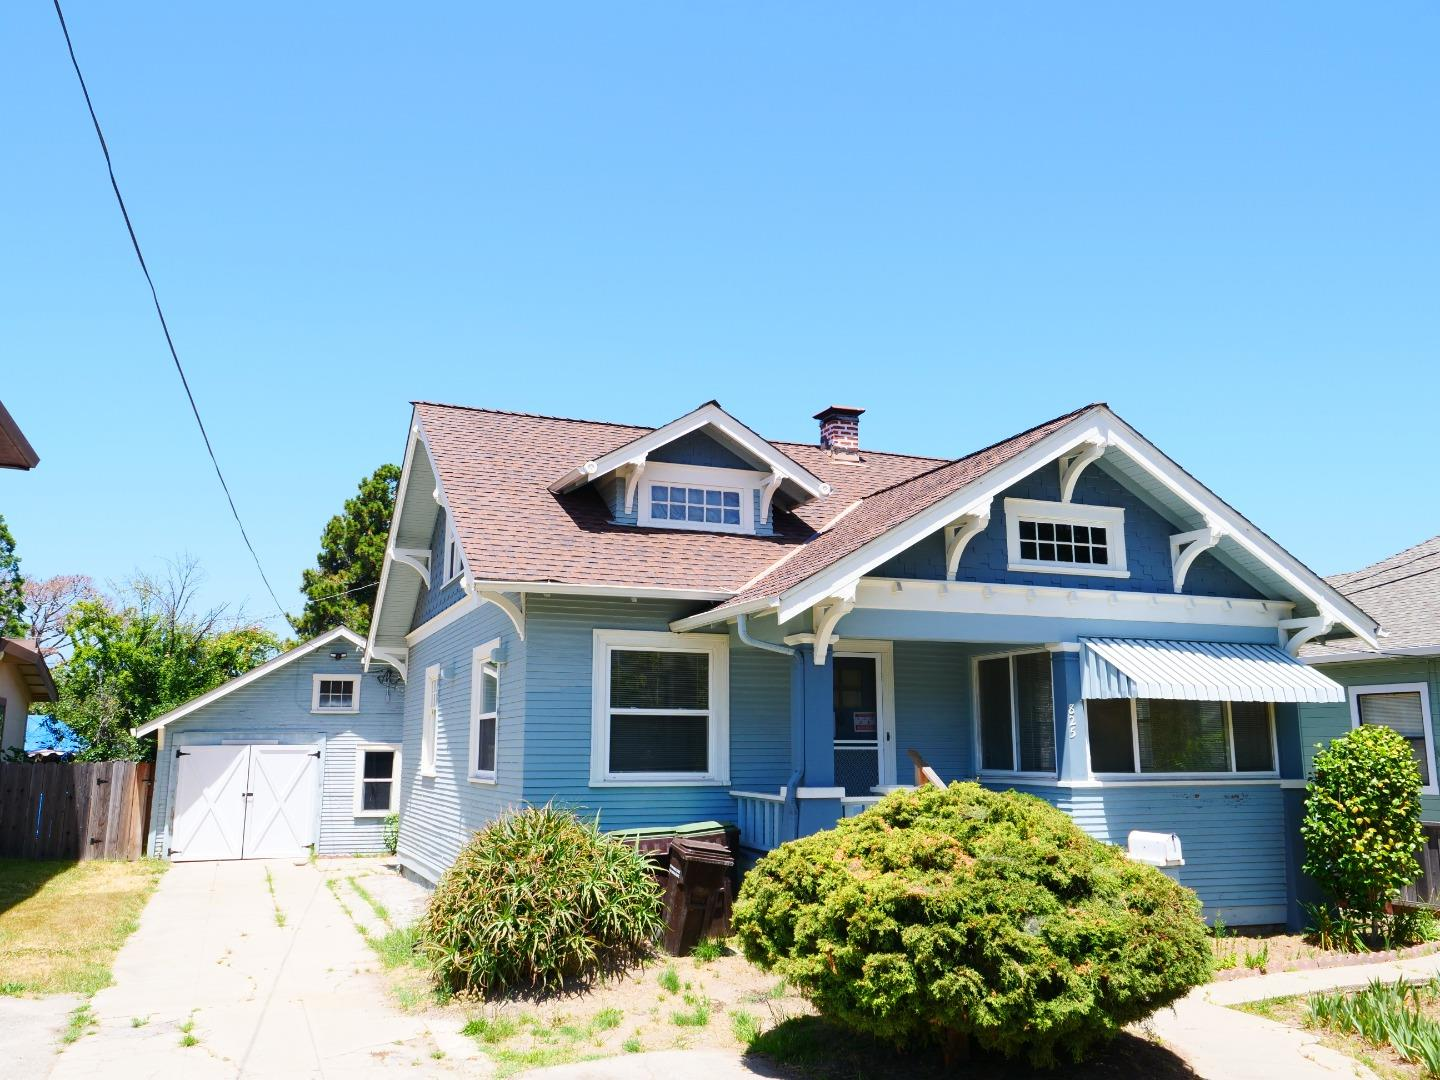 Home needs major updating, but classic architectural details throughout. Great location, walk to stores and restaurants. Large lot, detached garage and workshop ,combined 720 Sq ft., expansive  garden area, fruit trees.